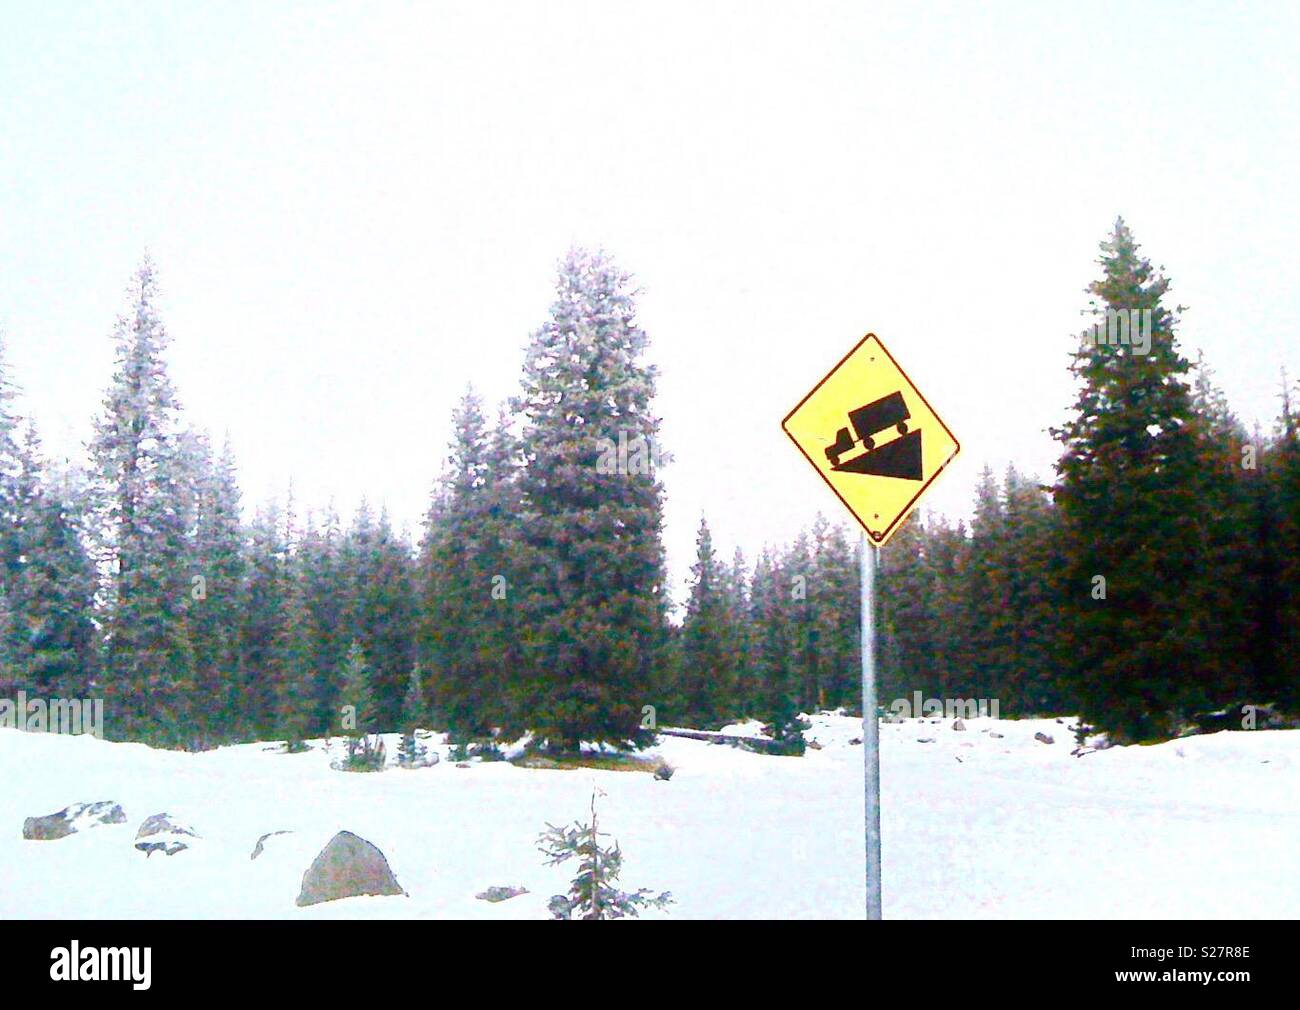 Downhill traffic sign. - Stock Image